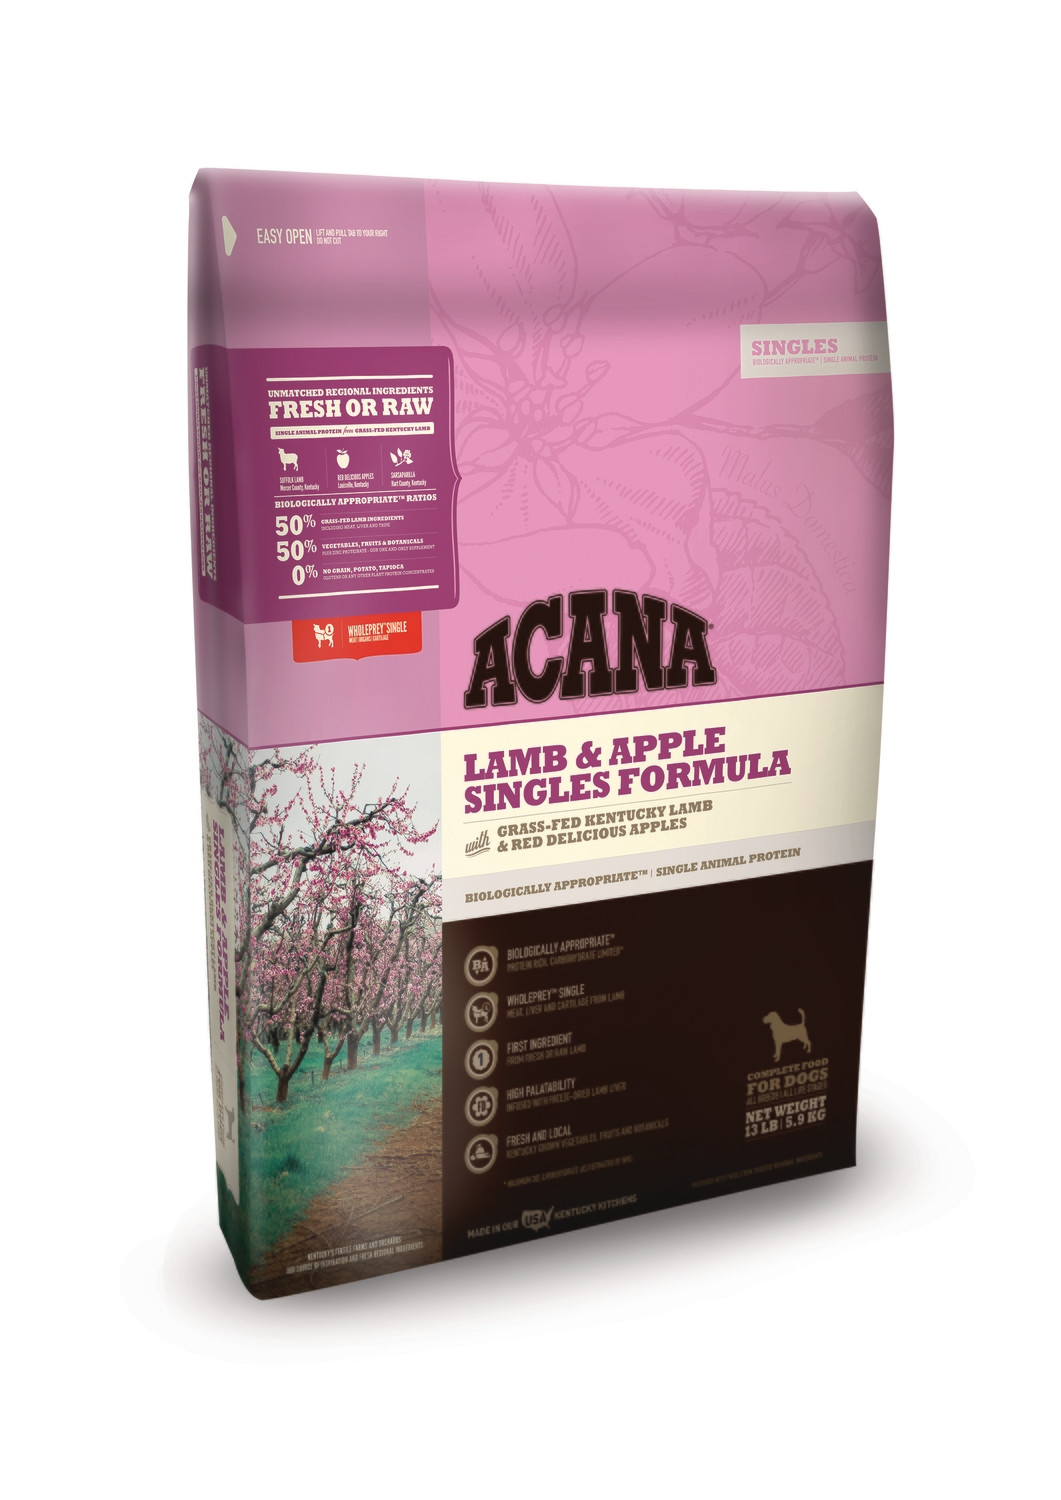 Acana Singles Lamb & Apple 25lb